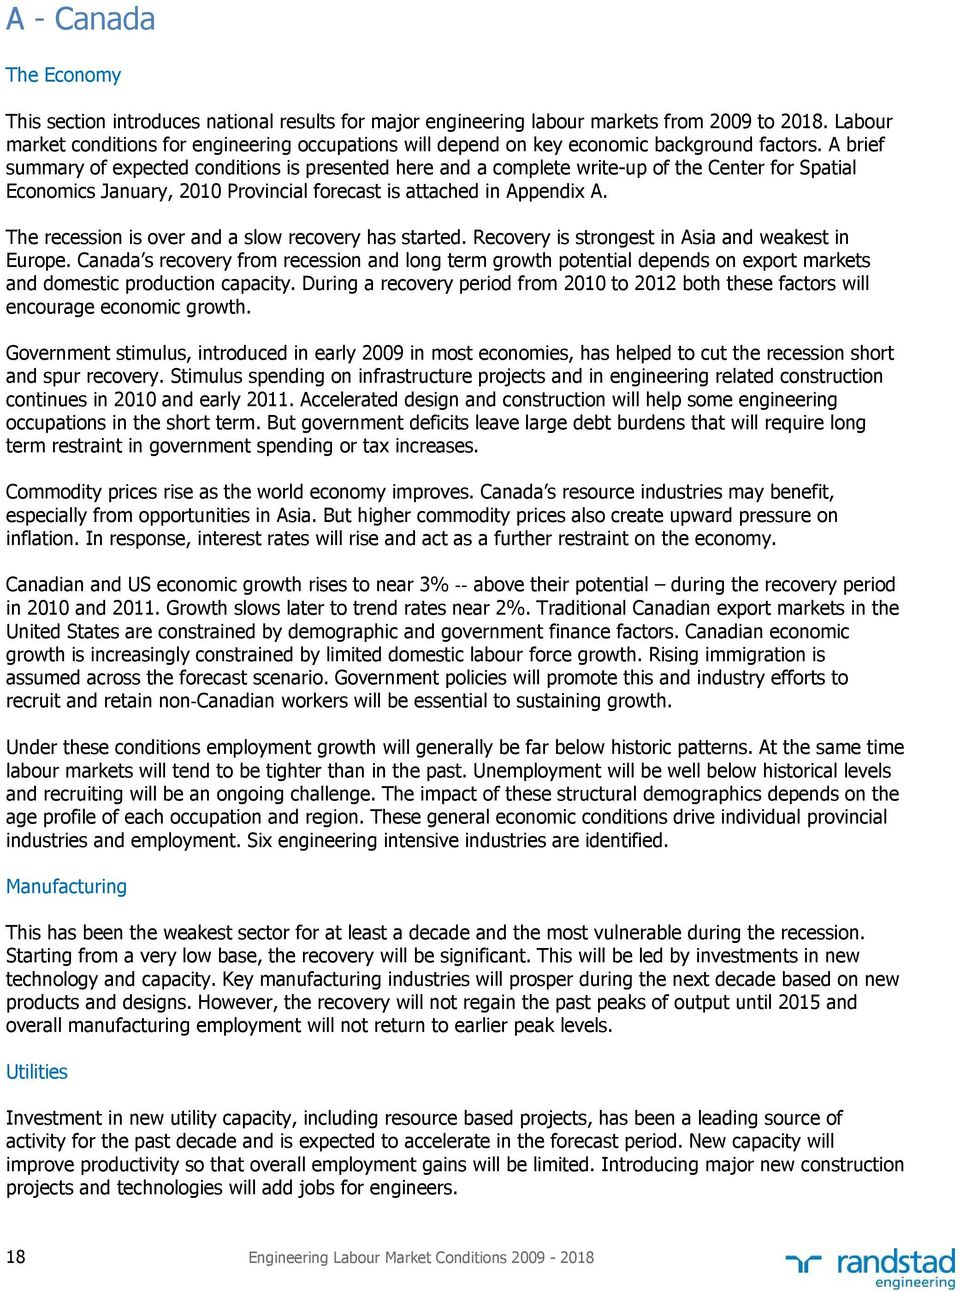 A brief summary of expected conditions is presented here and a complete write-up of the Center for Spatial Economics January, 2010 Provincial forecast is attached in Appendix A.